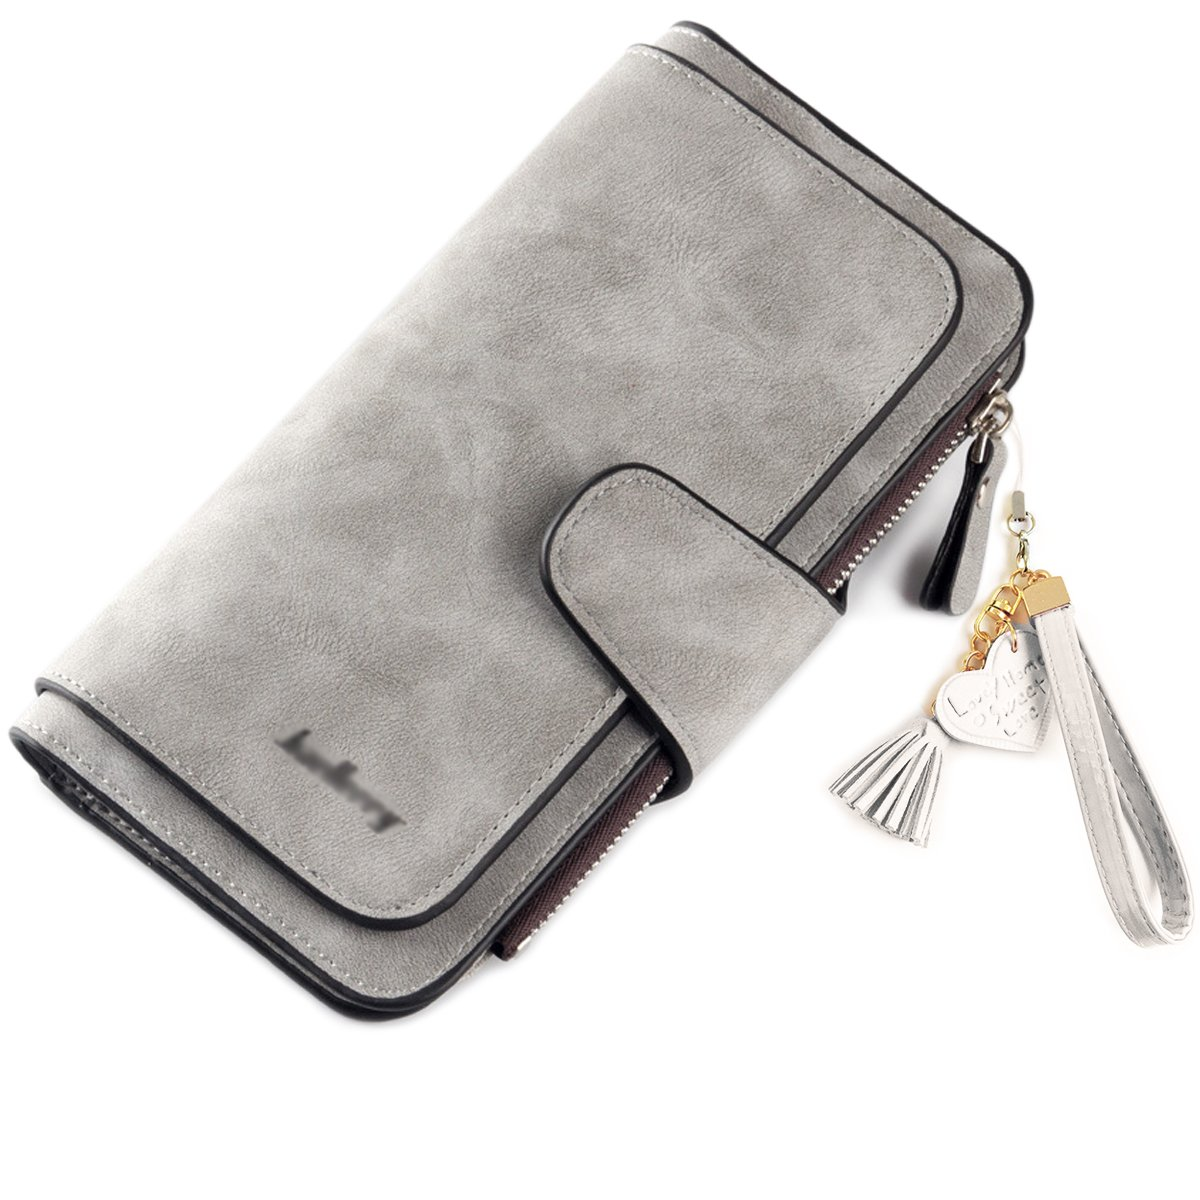 Wallet, NEWANIMA Womens Leather Large Capacity Wallet Multi Card Organizer With Keychain, Color - Style-2-light Grey